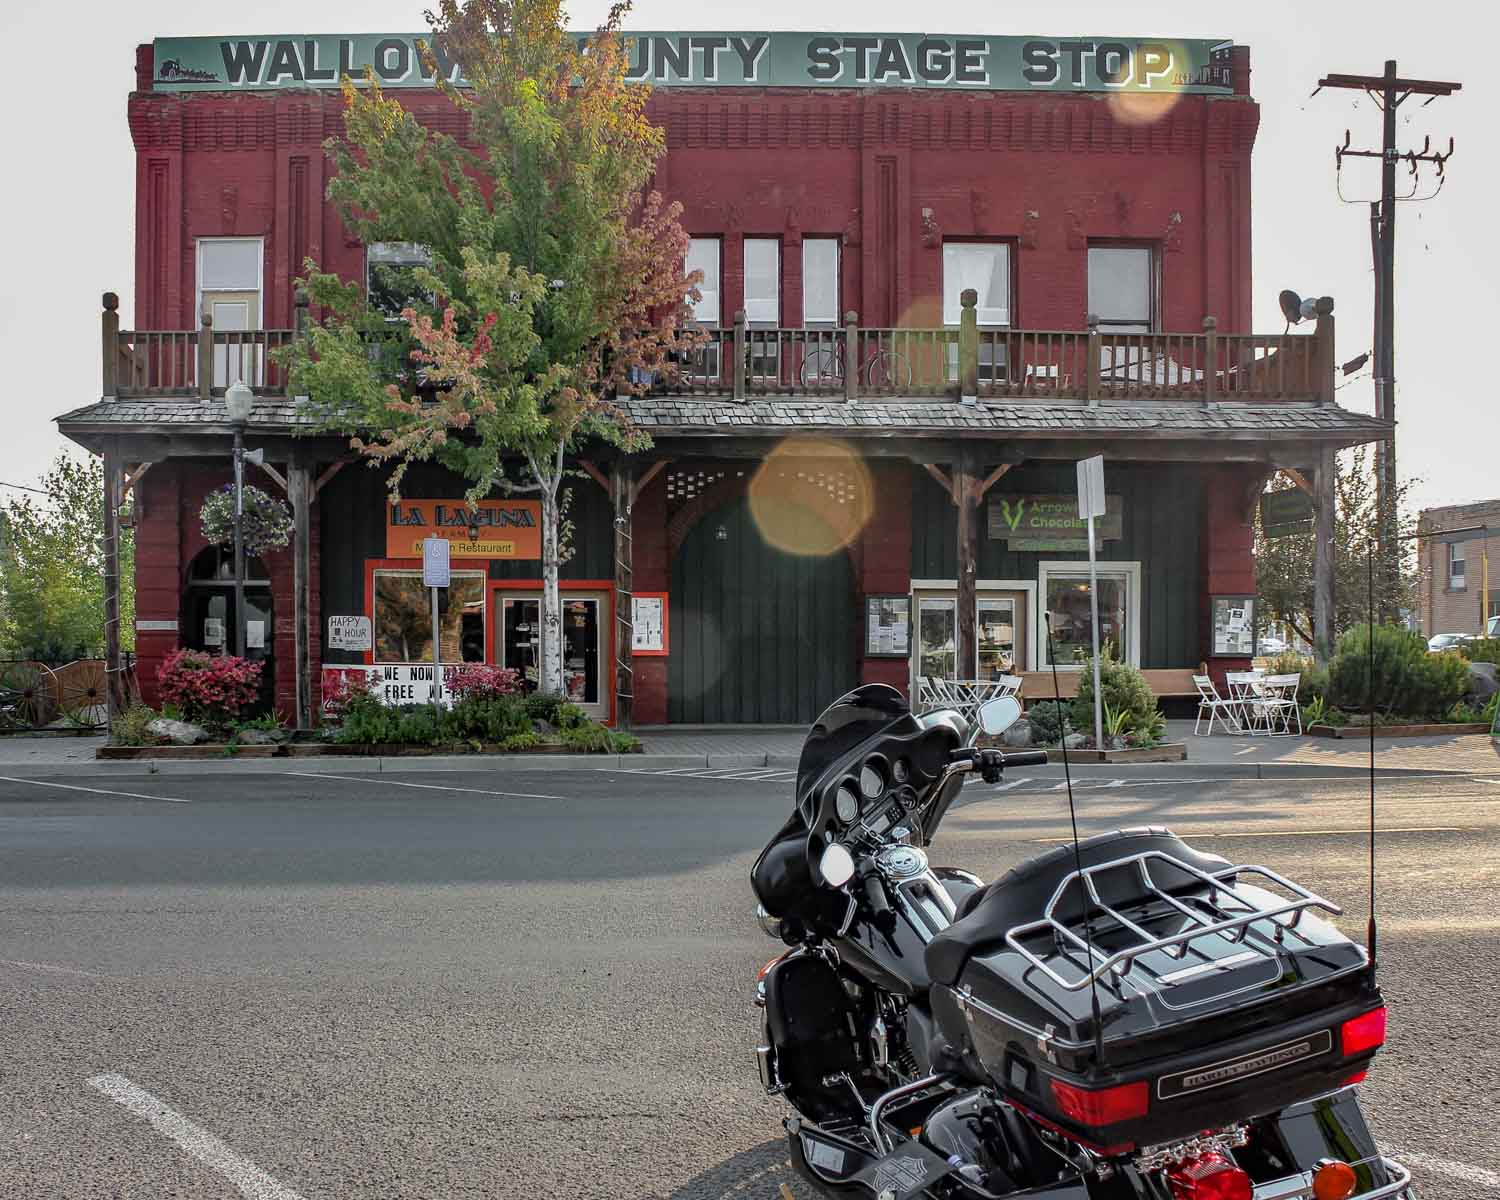 Arrowhead Chocolates in the old Wallowa County Stage Stop building - Photo by Ron Huckins